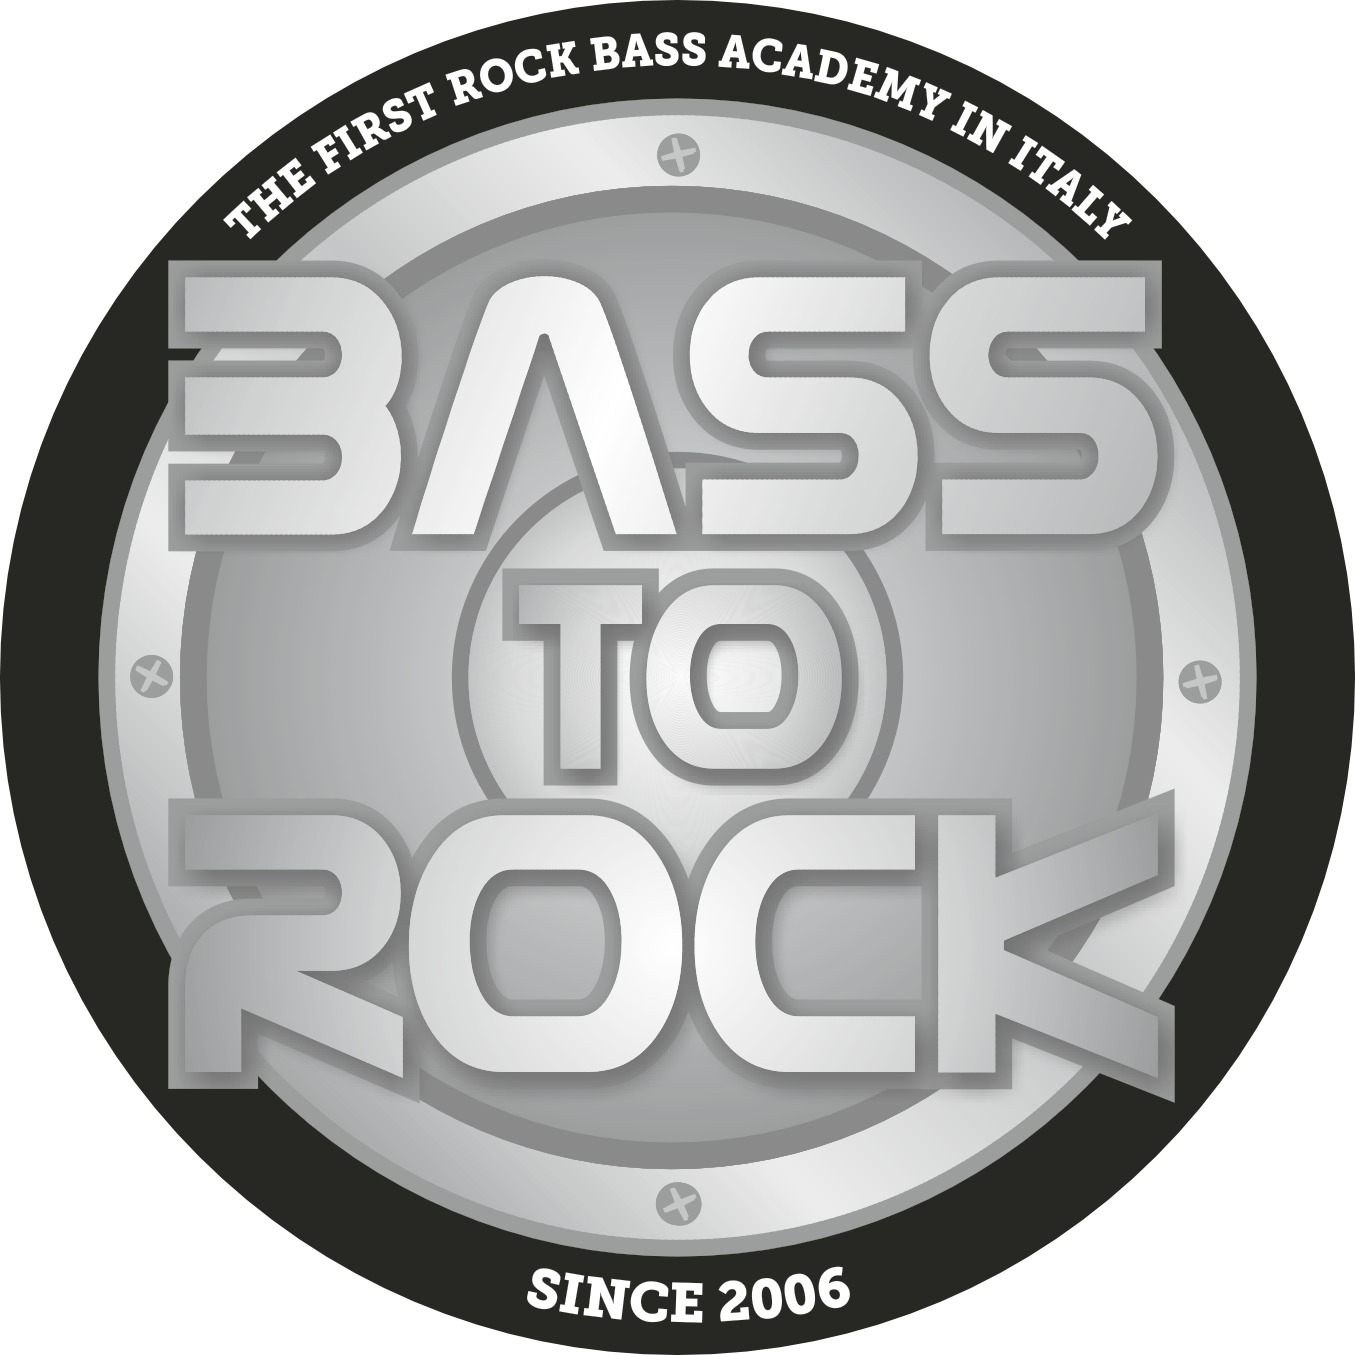 Accademia Bass to Rock